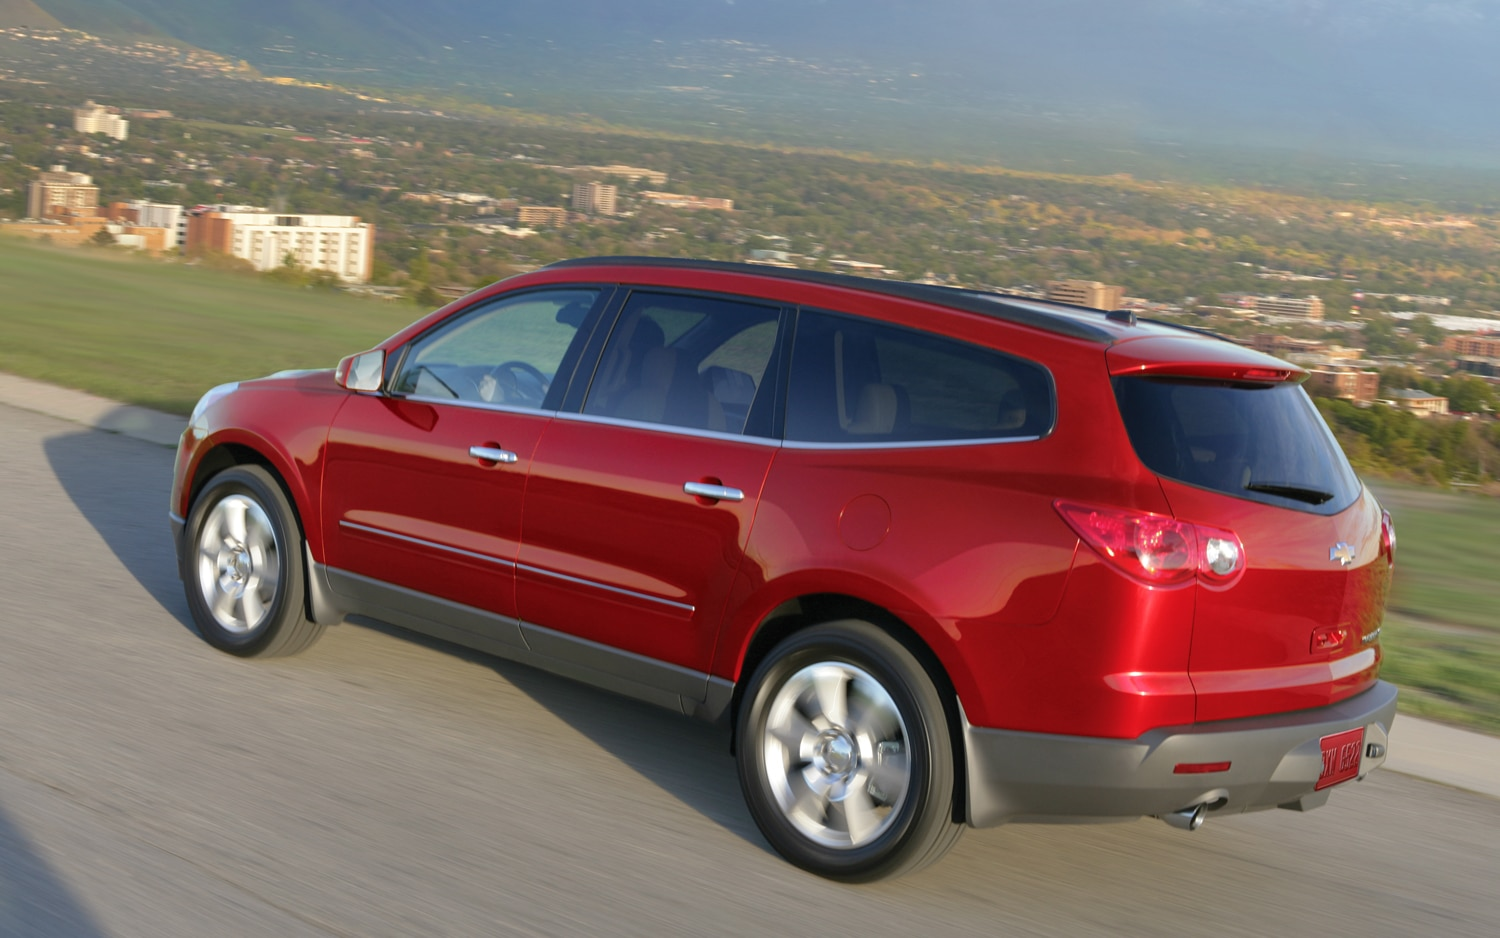 50,000 Chevrolet Traverse, GMC Acadia, Buick Enclave Models Recalled for Wipers